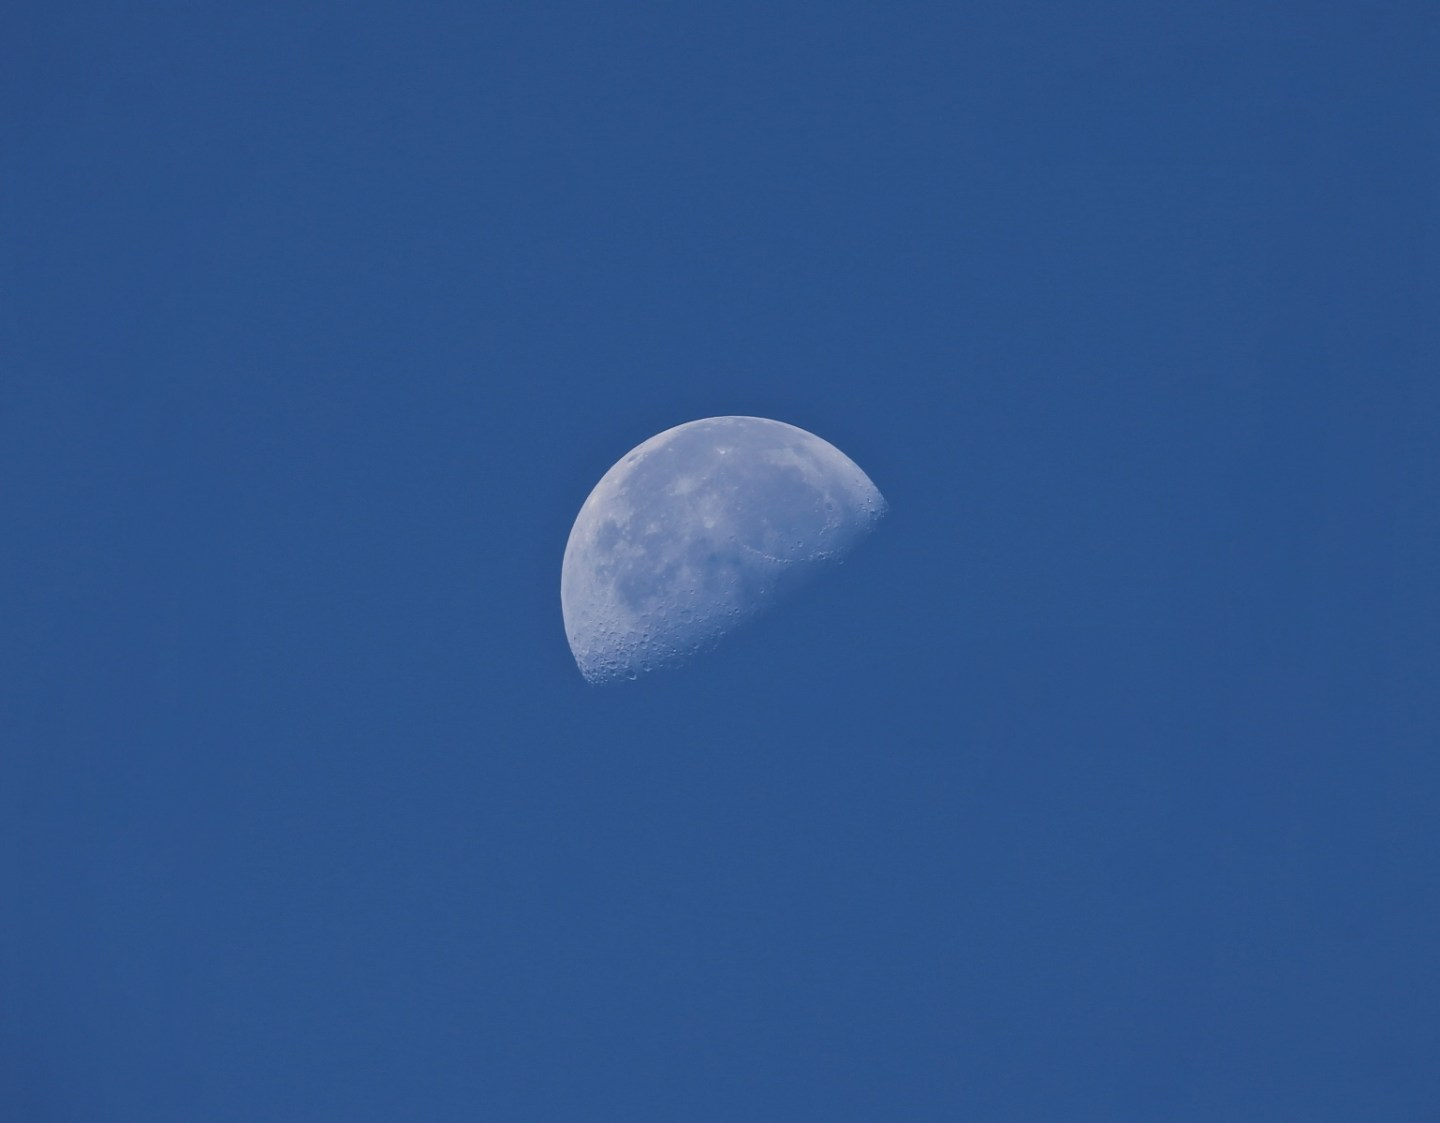 90% SURE THIS IS A WANING GIBBOUS